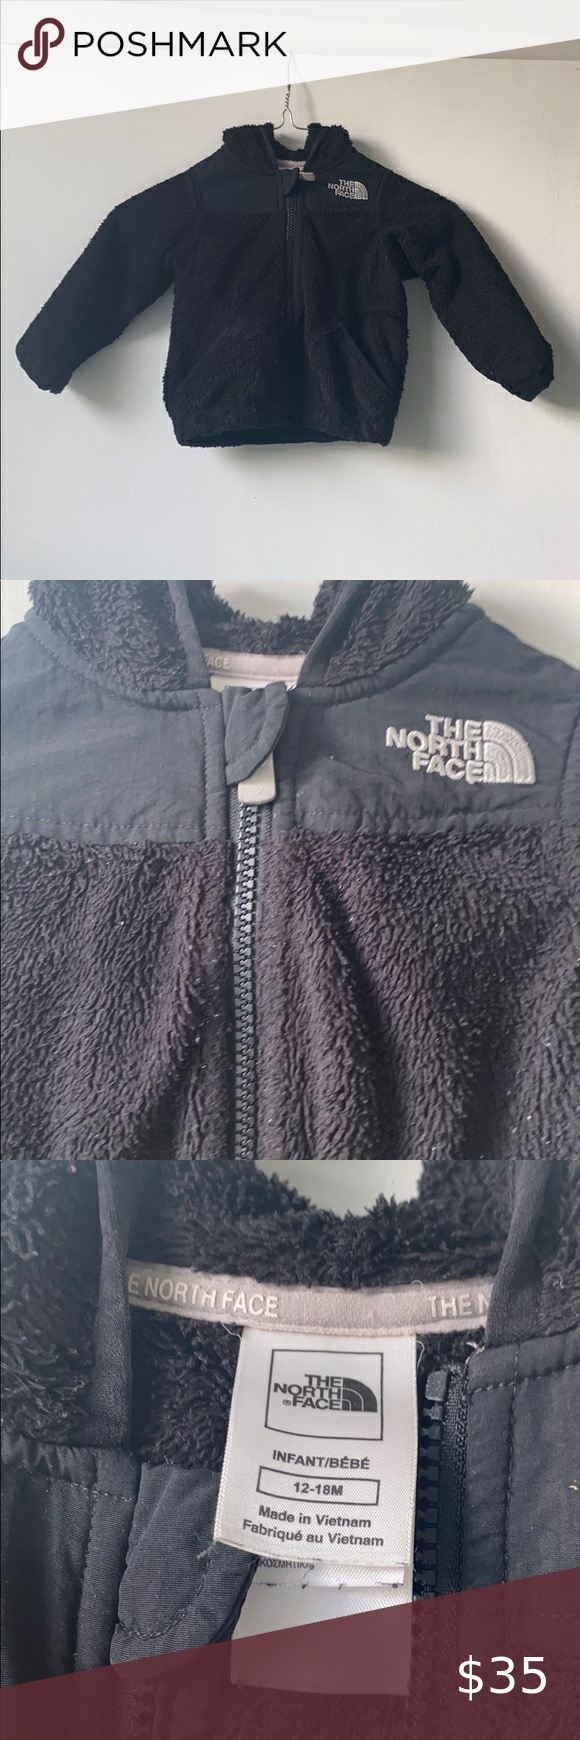 The North Face Fleece North Face Fleece The North Face North Face Jacket [ 1740 x 580 Pixel ]